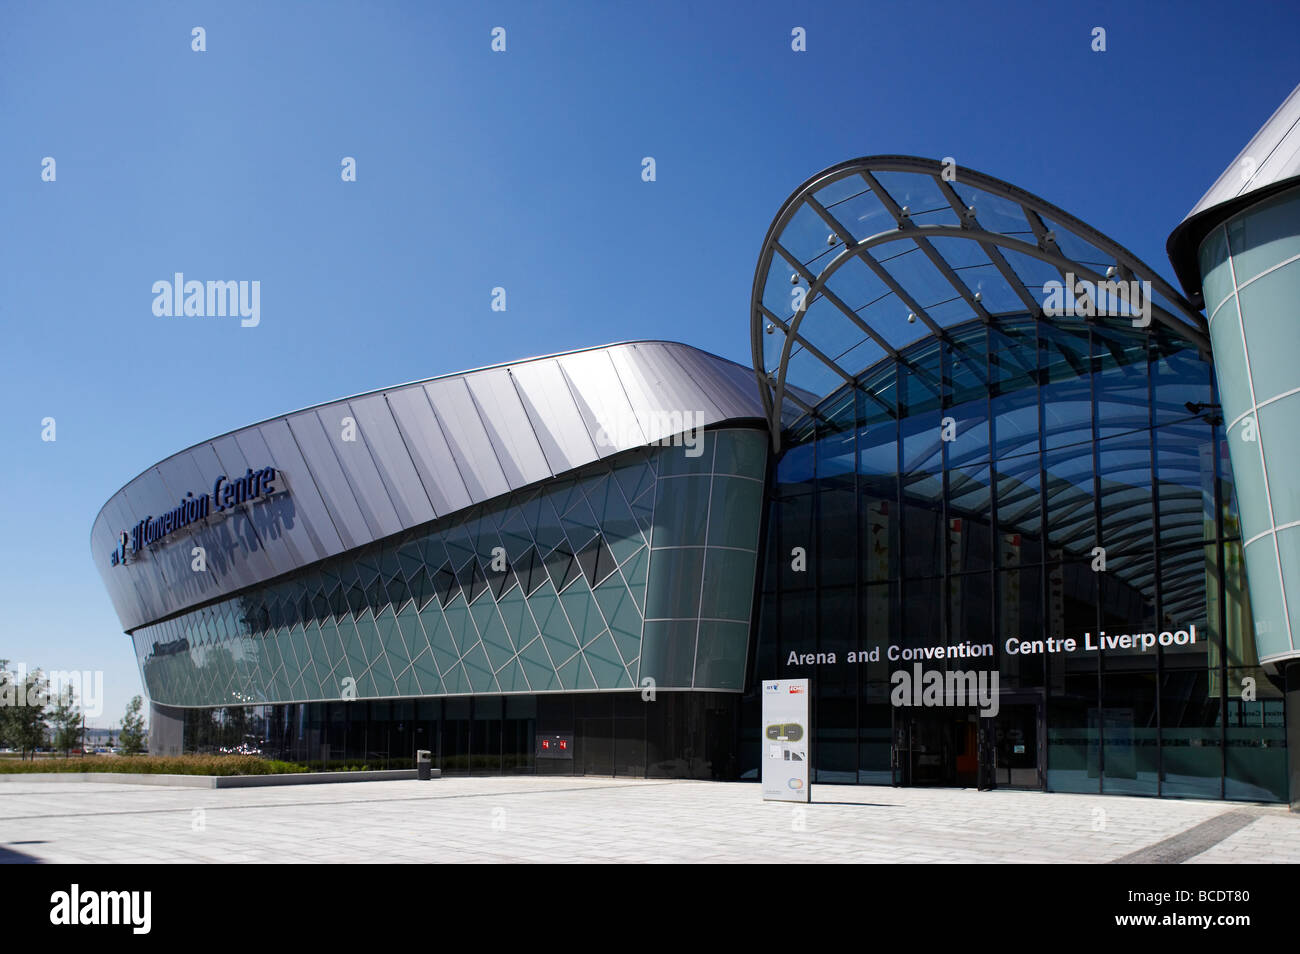 Arena and Convention Centre in Liverpool UK - Stock Image